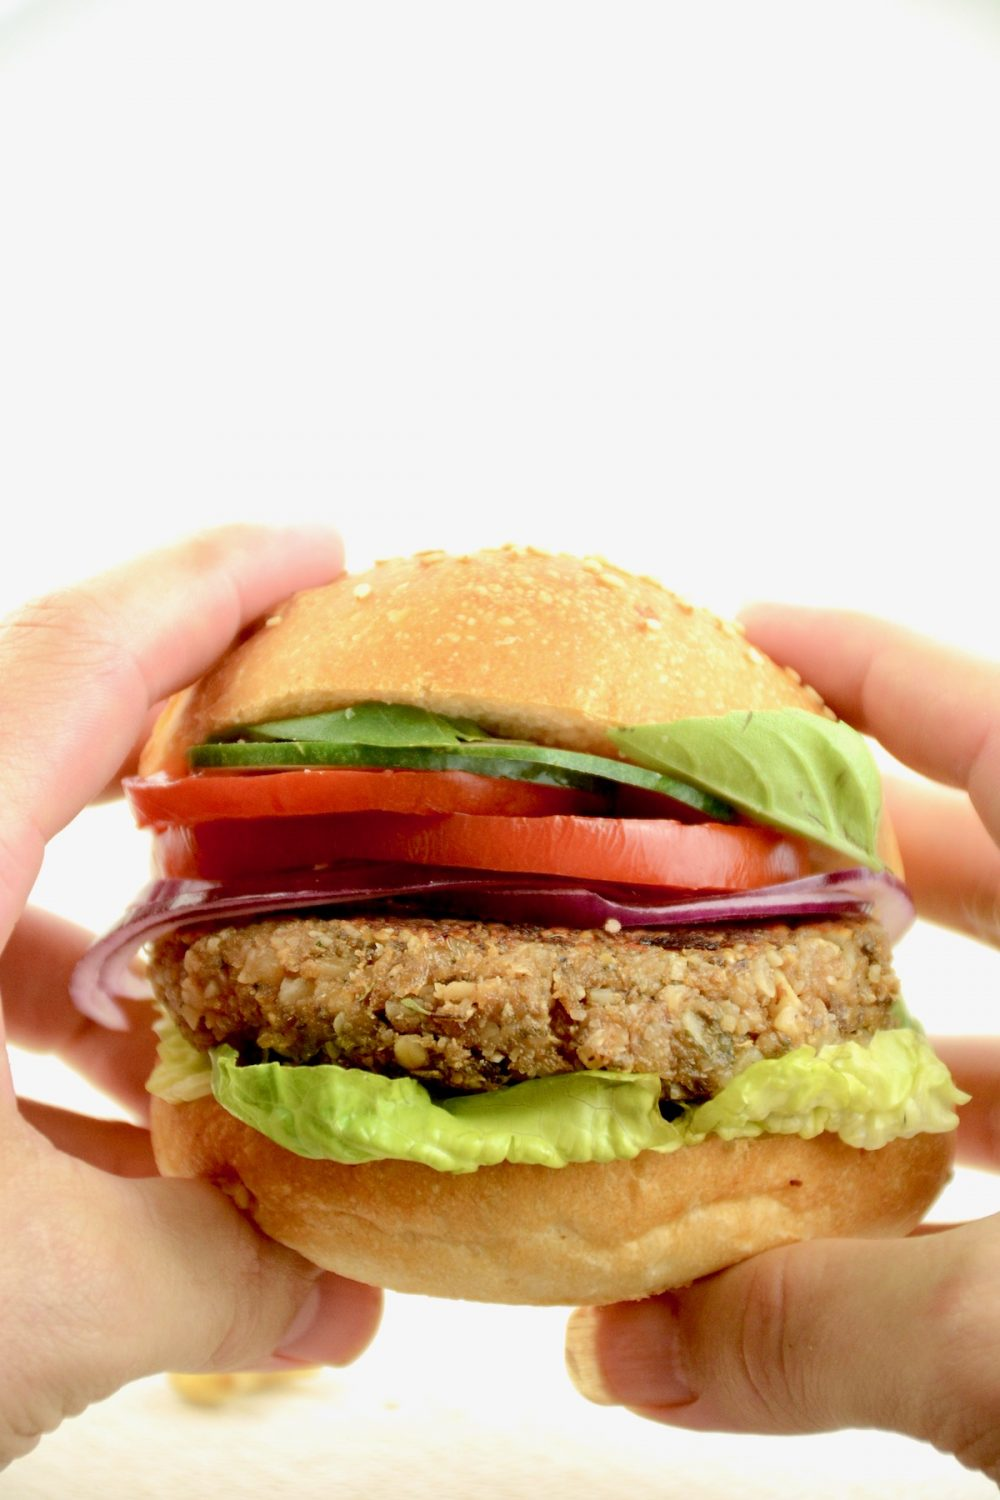 Hands holding up a burger in a bun. Apart from the nut patty, it is filled with lettuce and slices of tomato and red onion.